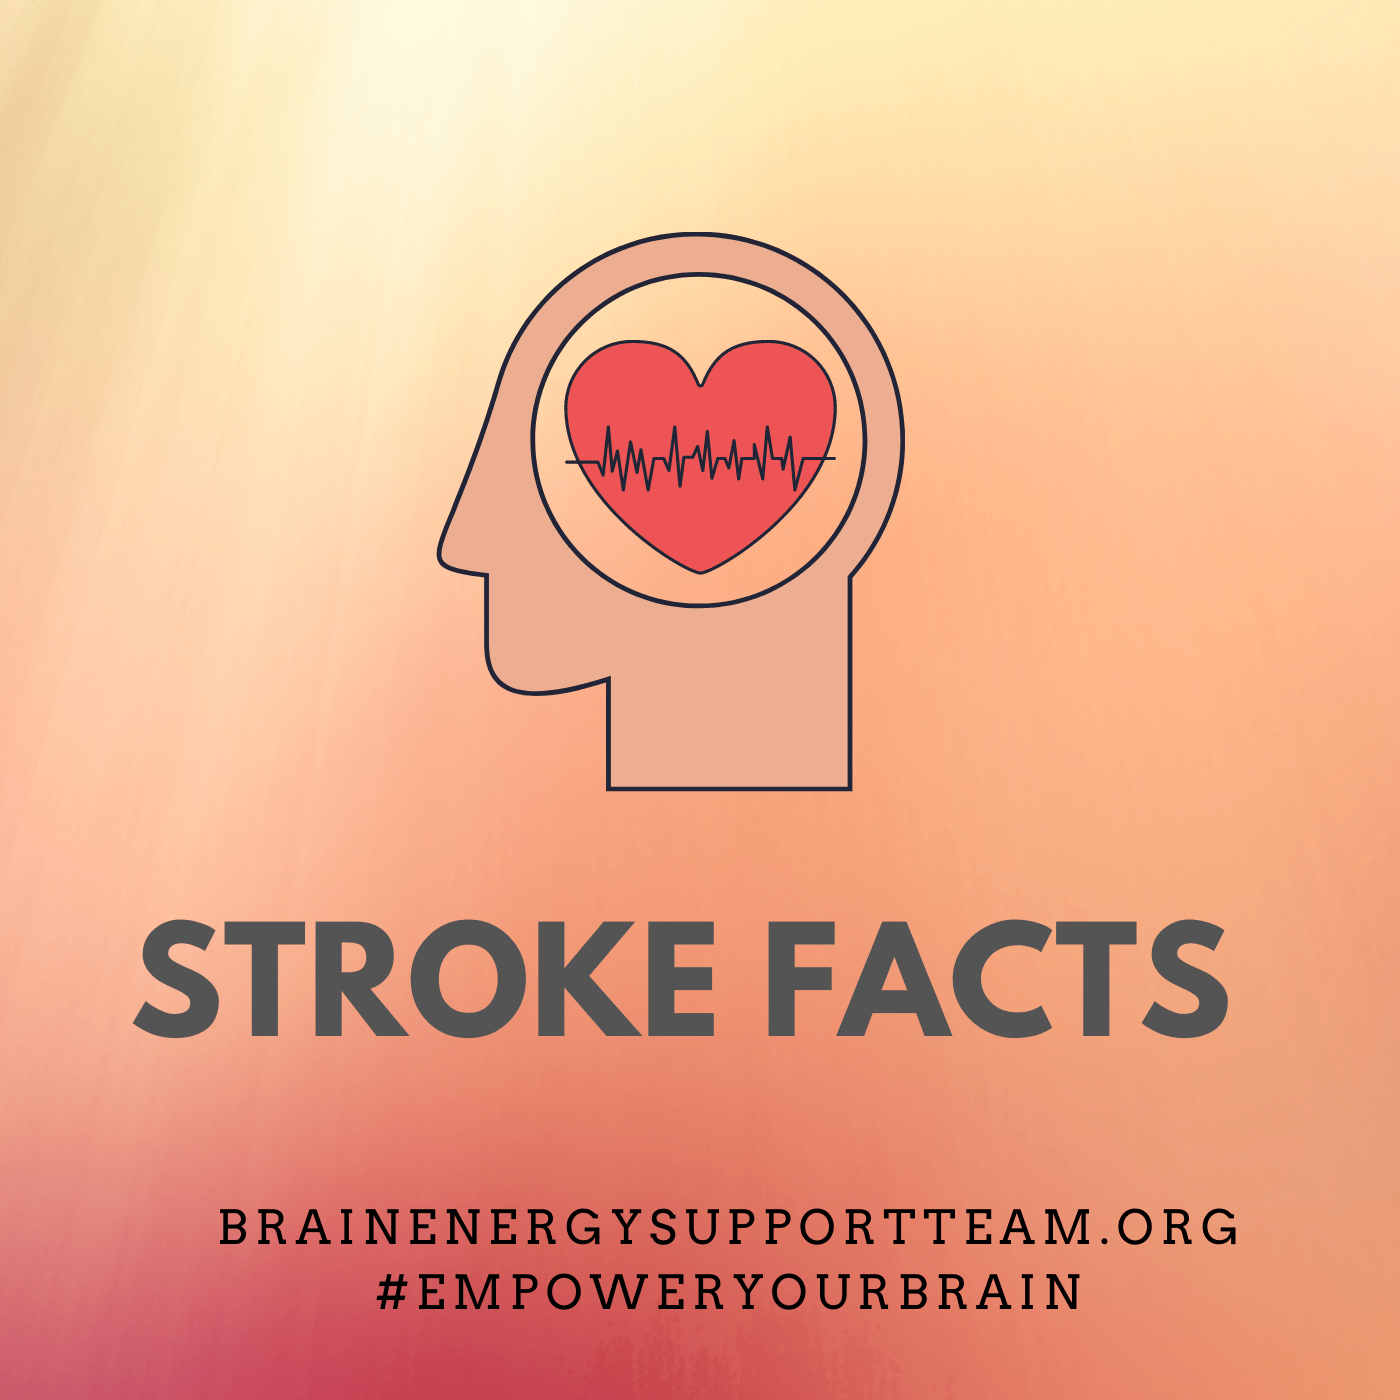 Stroke Facts: Unusual Causes Of Stroke